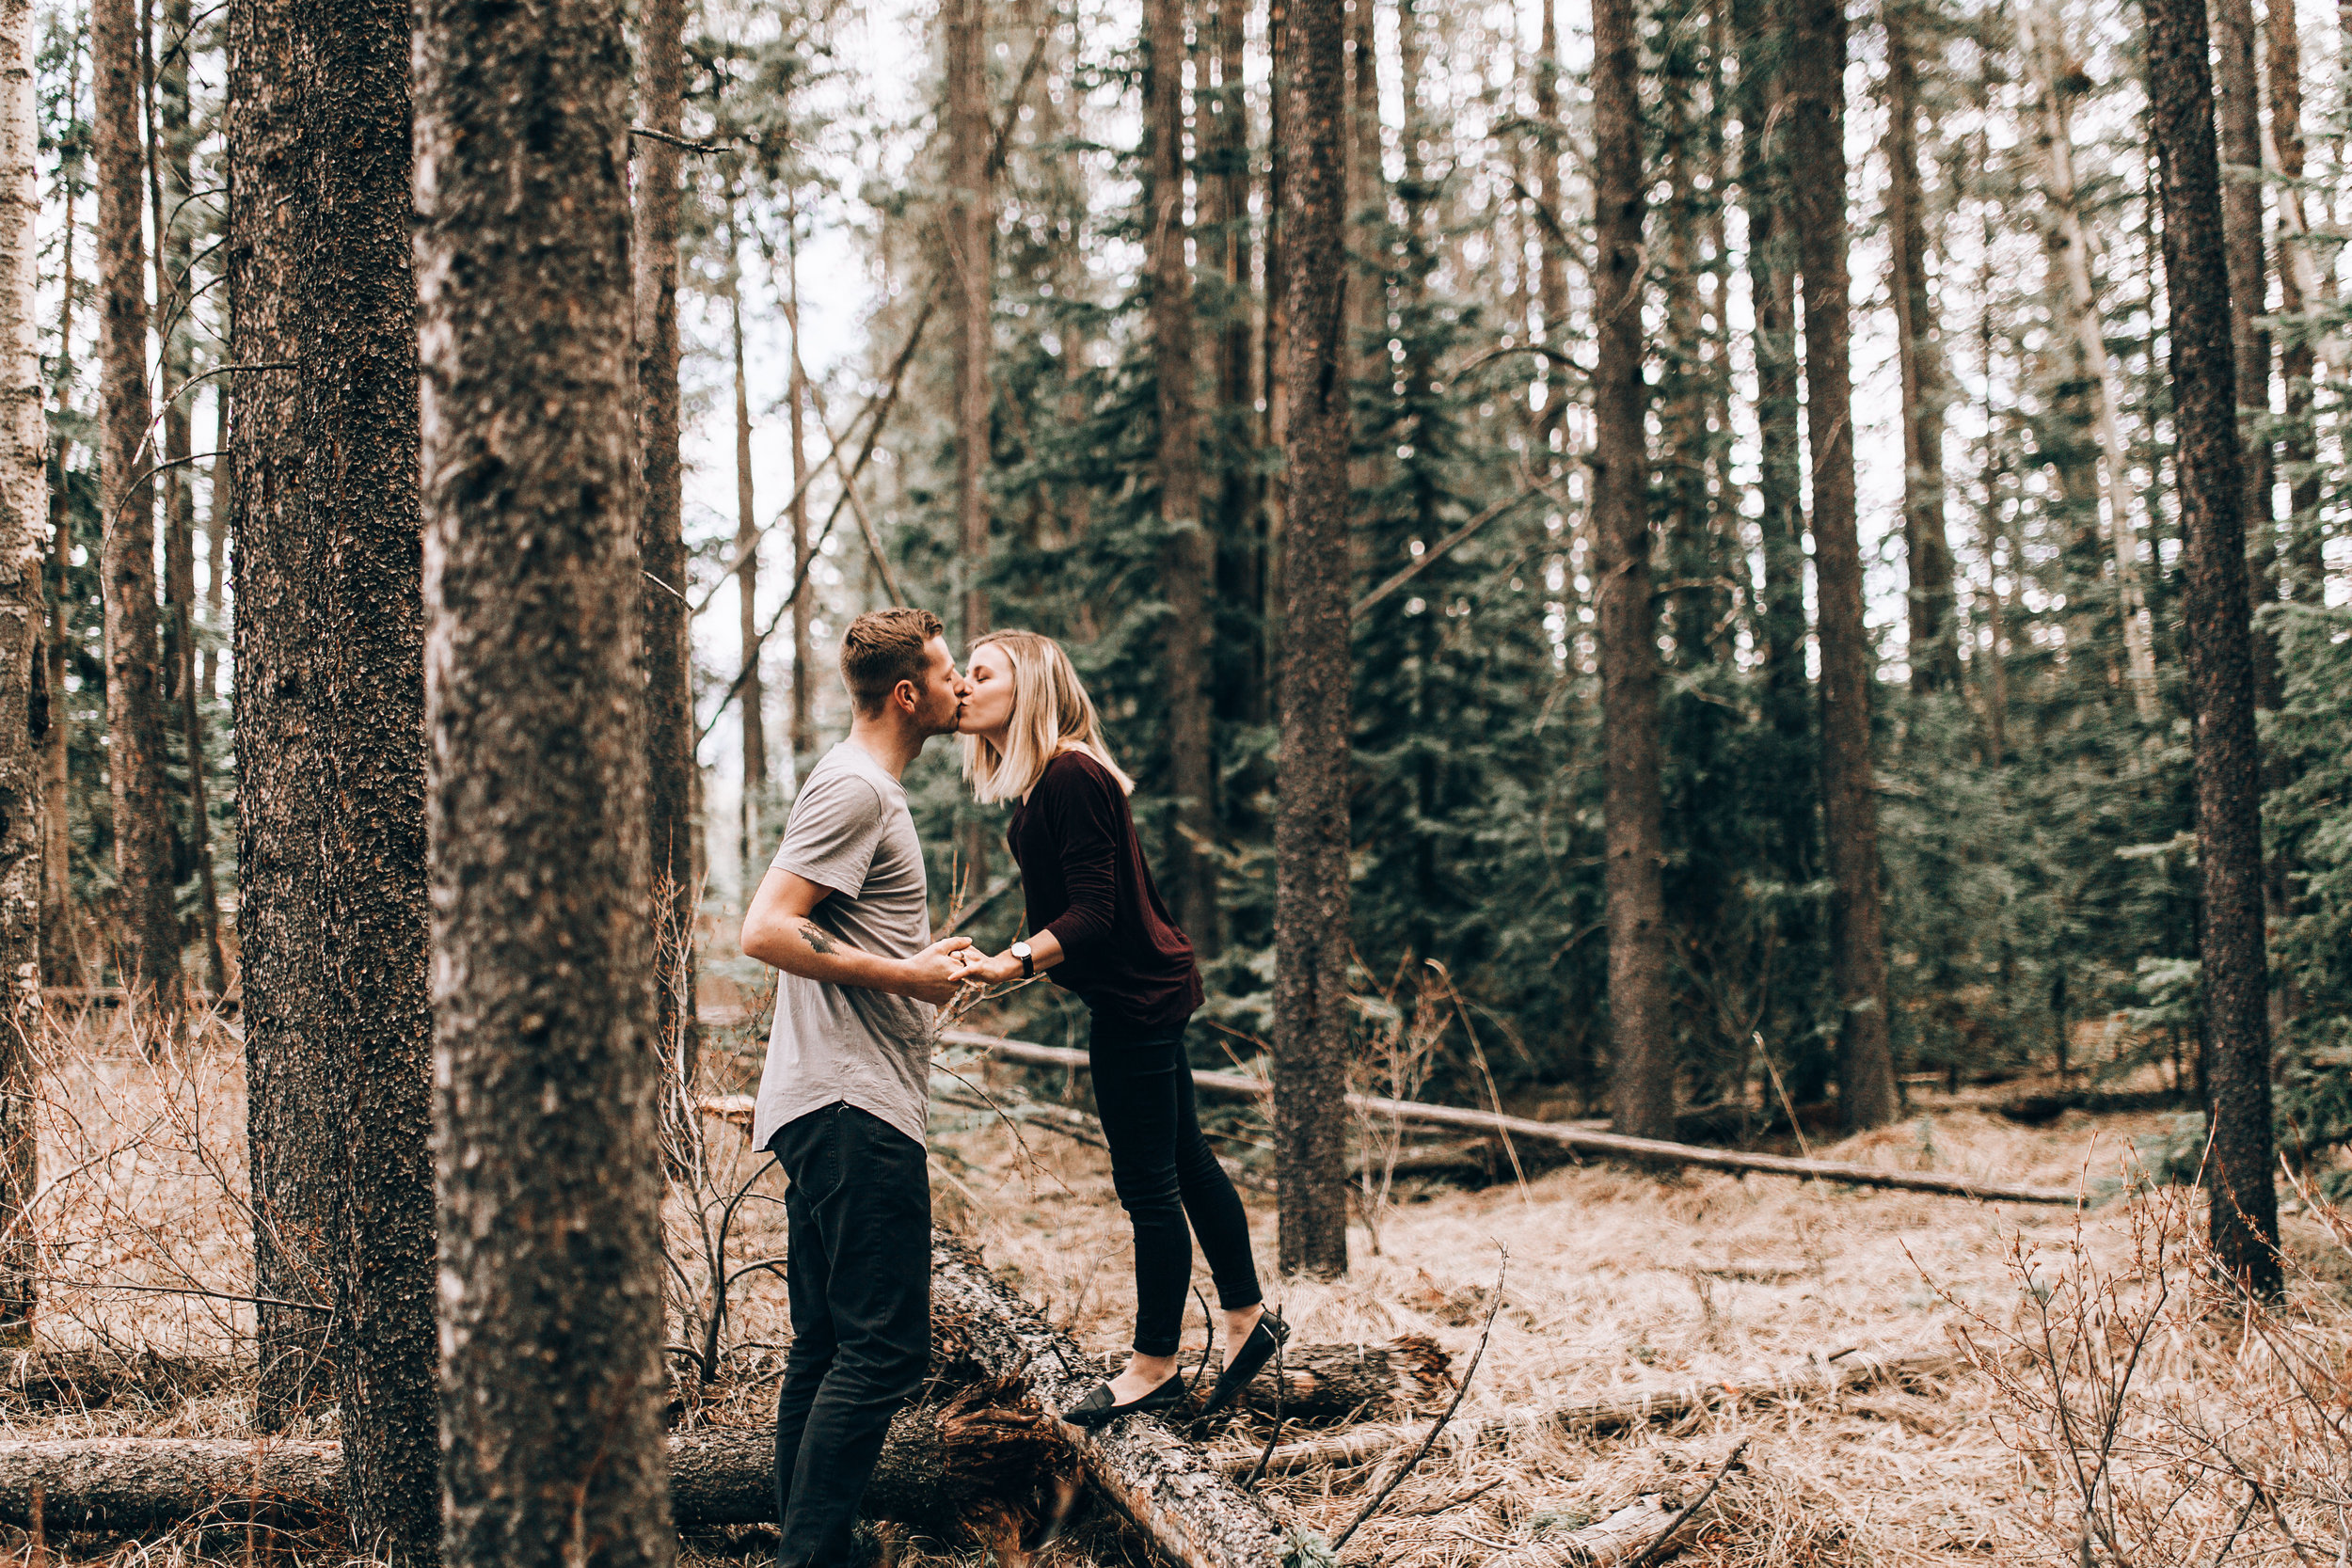 simpleperfectionsphotography.cullen+chelsey-27.jpg